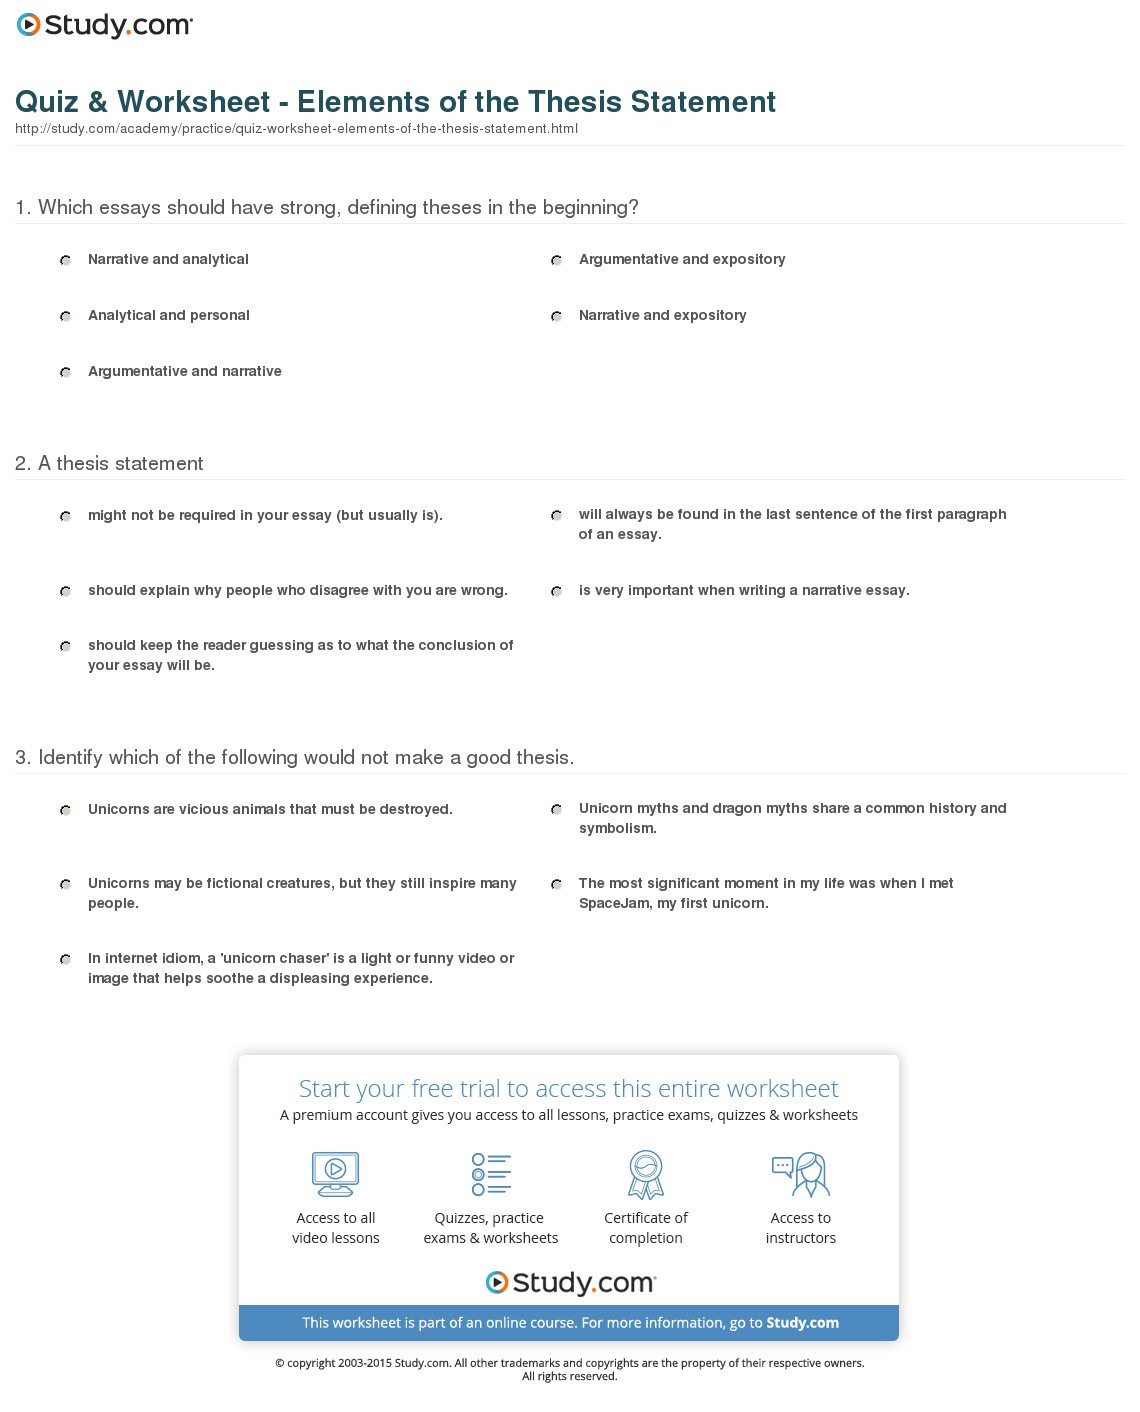 Quiz Worksheet Elements Of The Thesis Statement Study